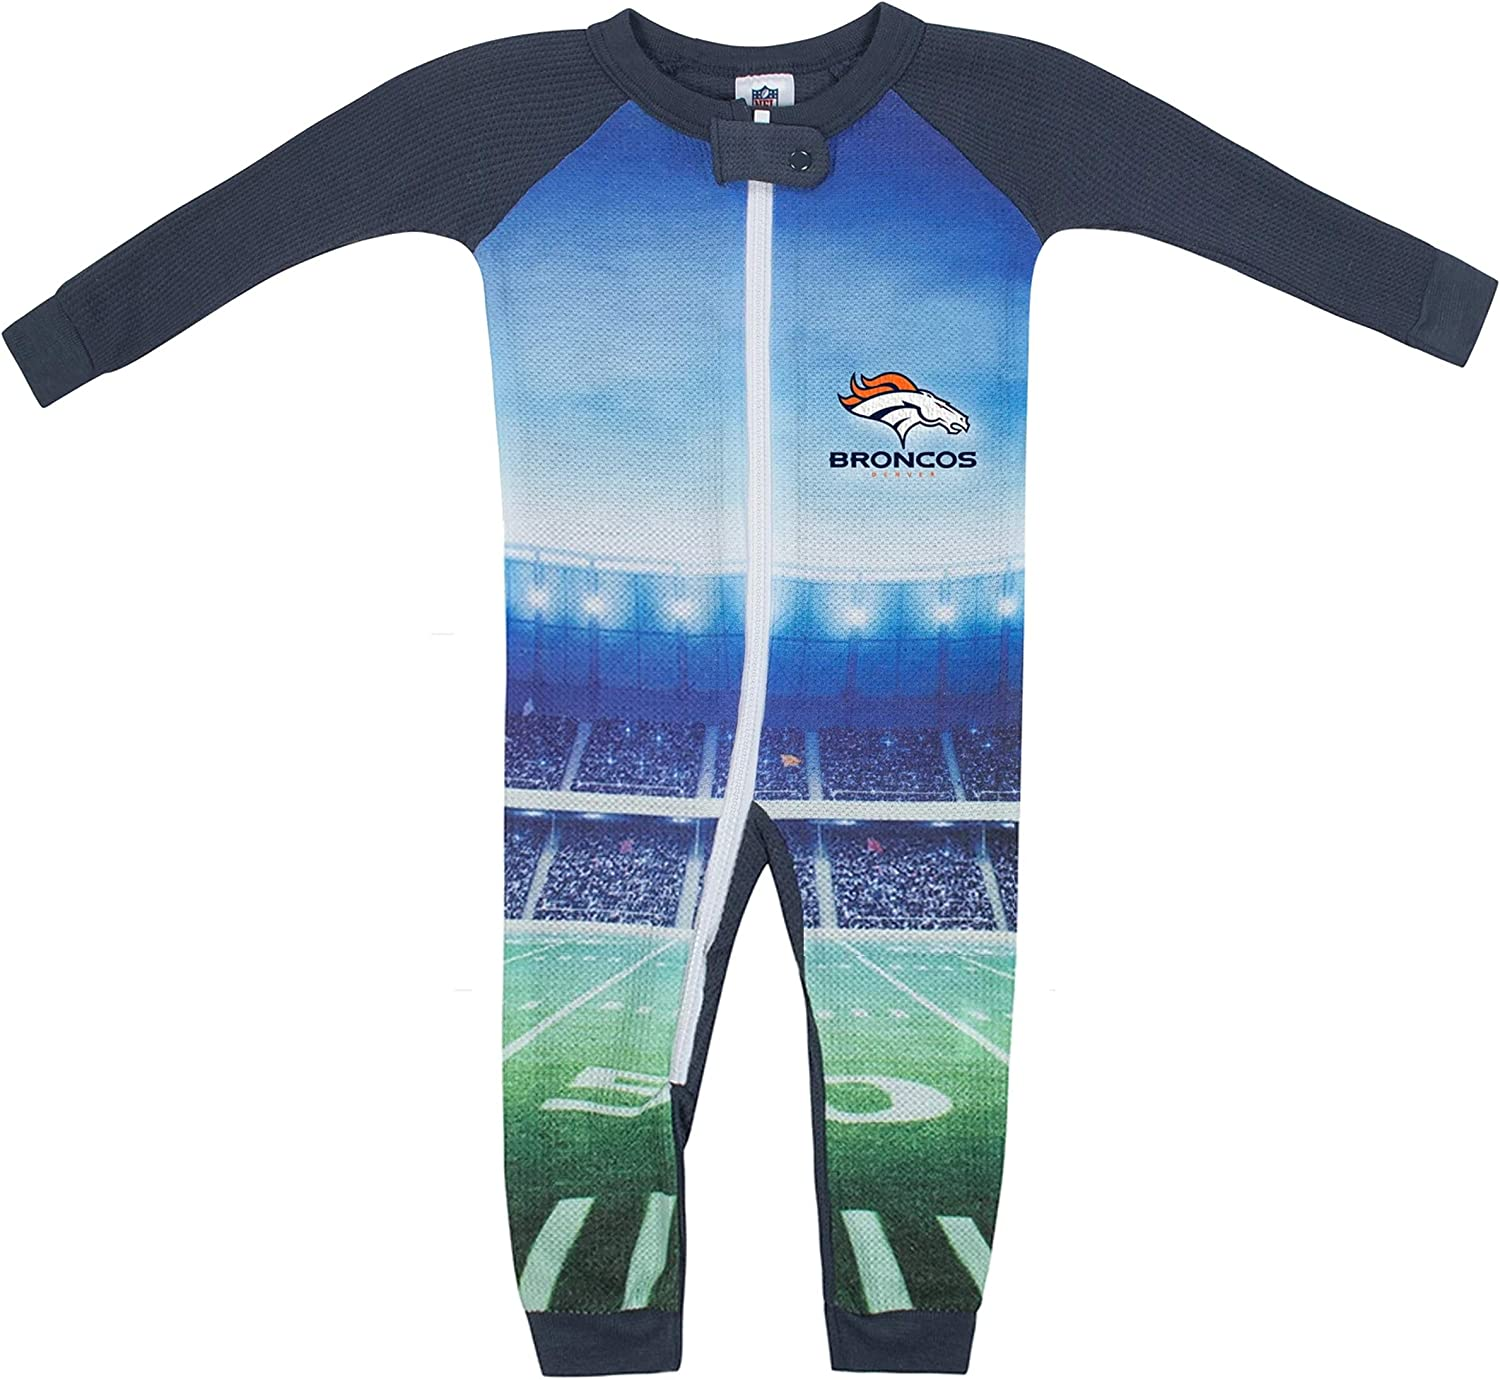 NFL Baby-Boy Thermal Team Unionsuit